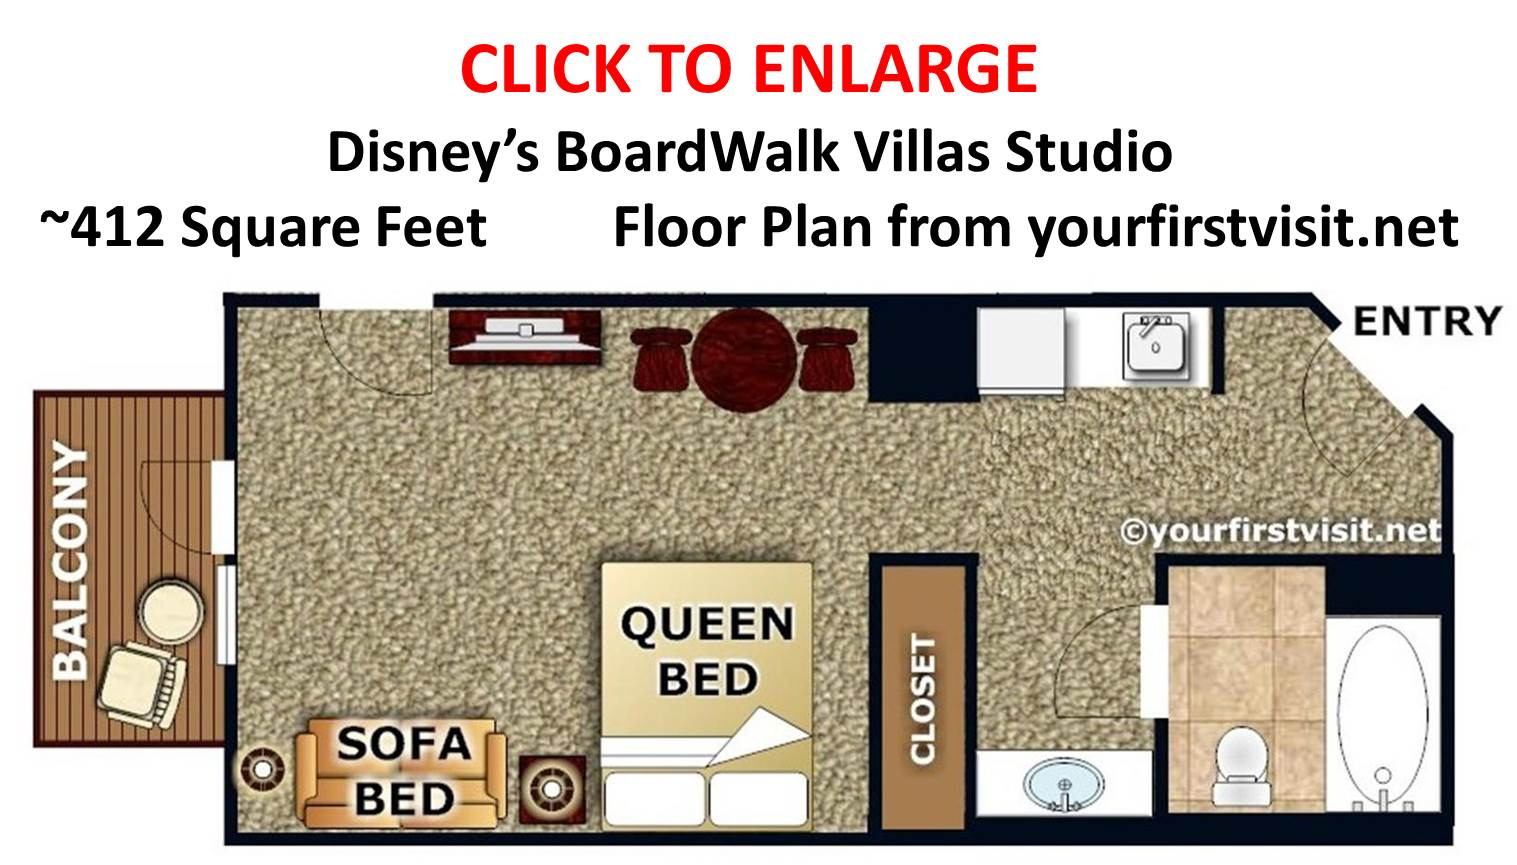 Sleeping space options and bed types at walt disney world resort disneys boardwalk villas studio floor plan from yourfirstvisit sciox Image collections